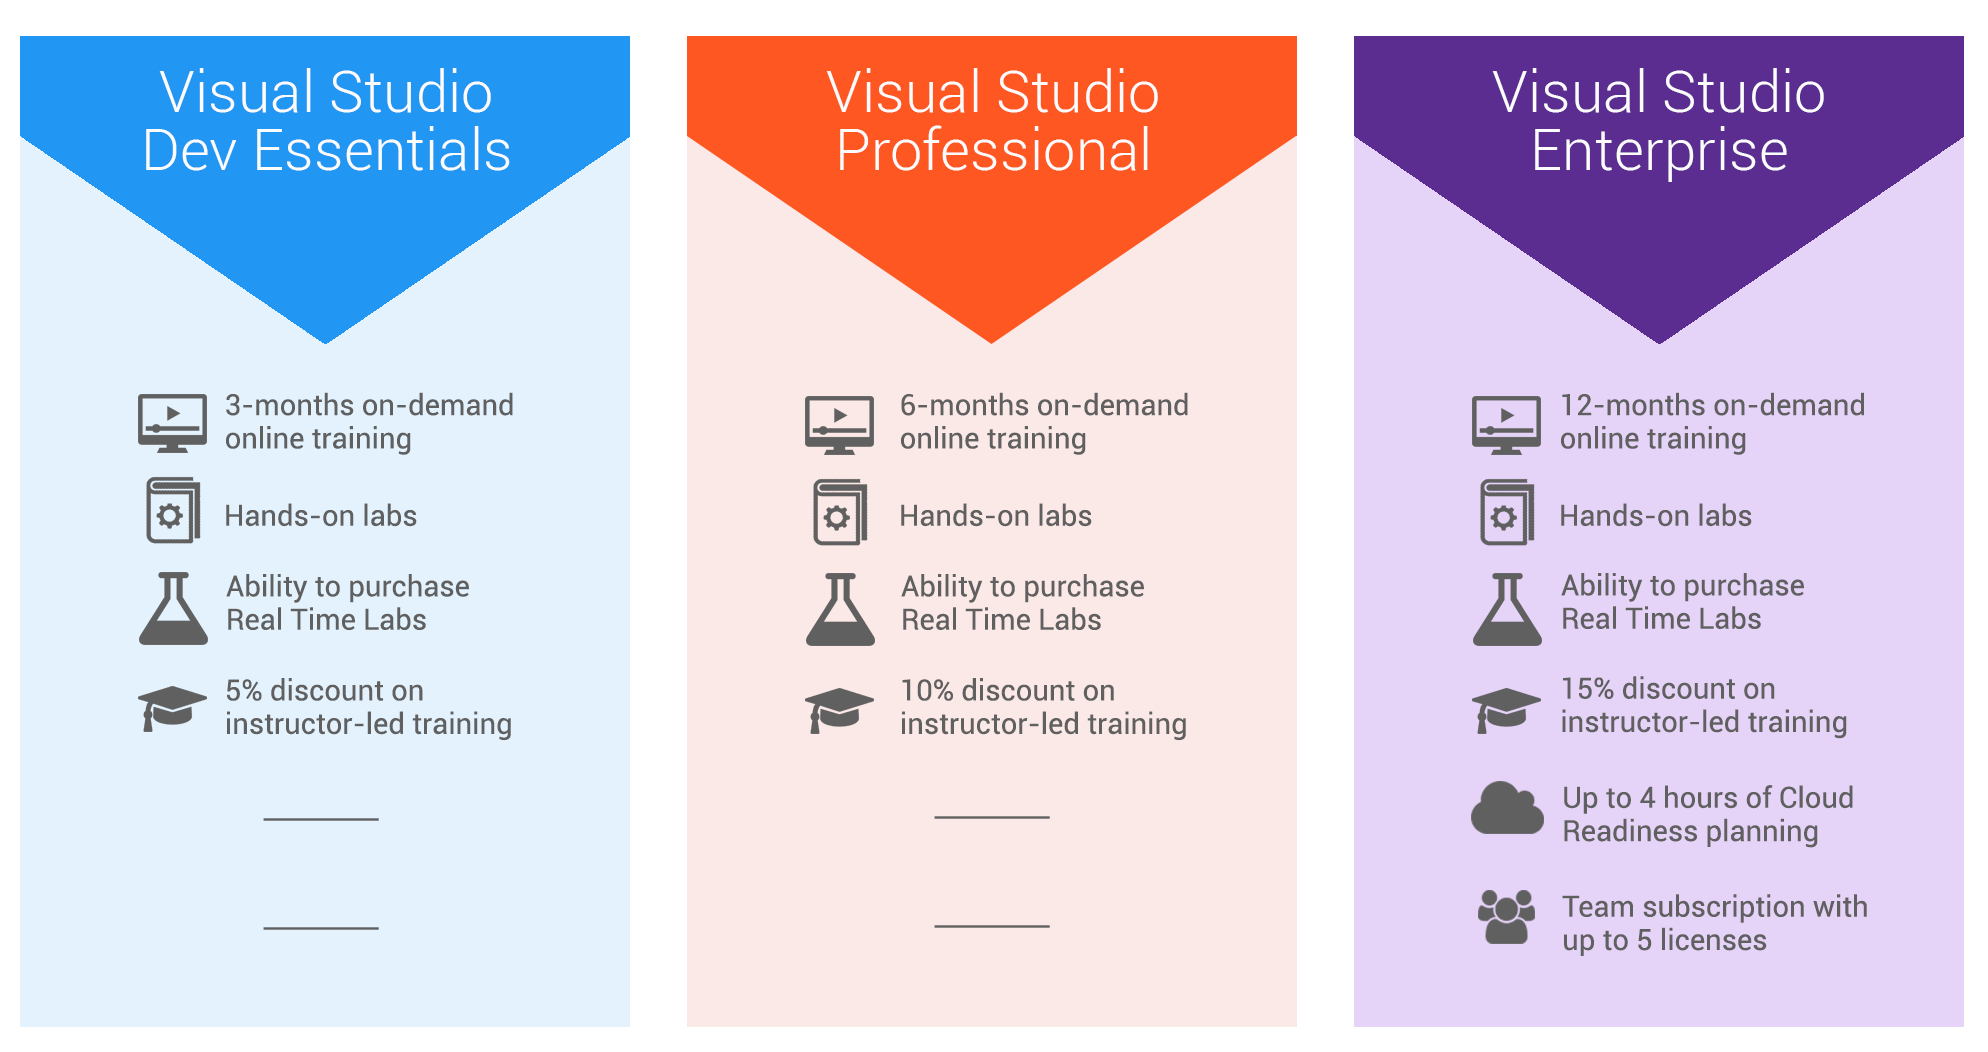 New Benefits for Visual Studio Subscribers and Dev Essentials Members